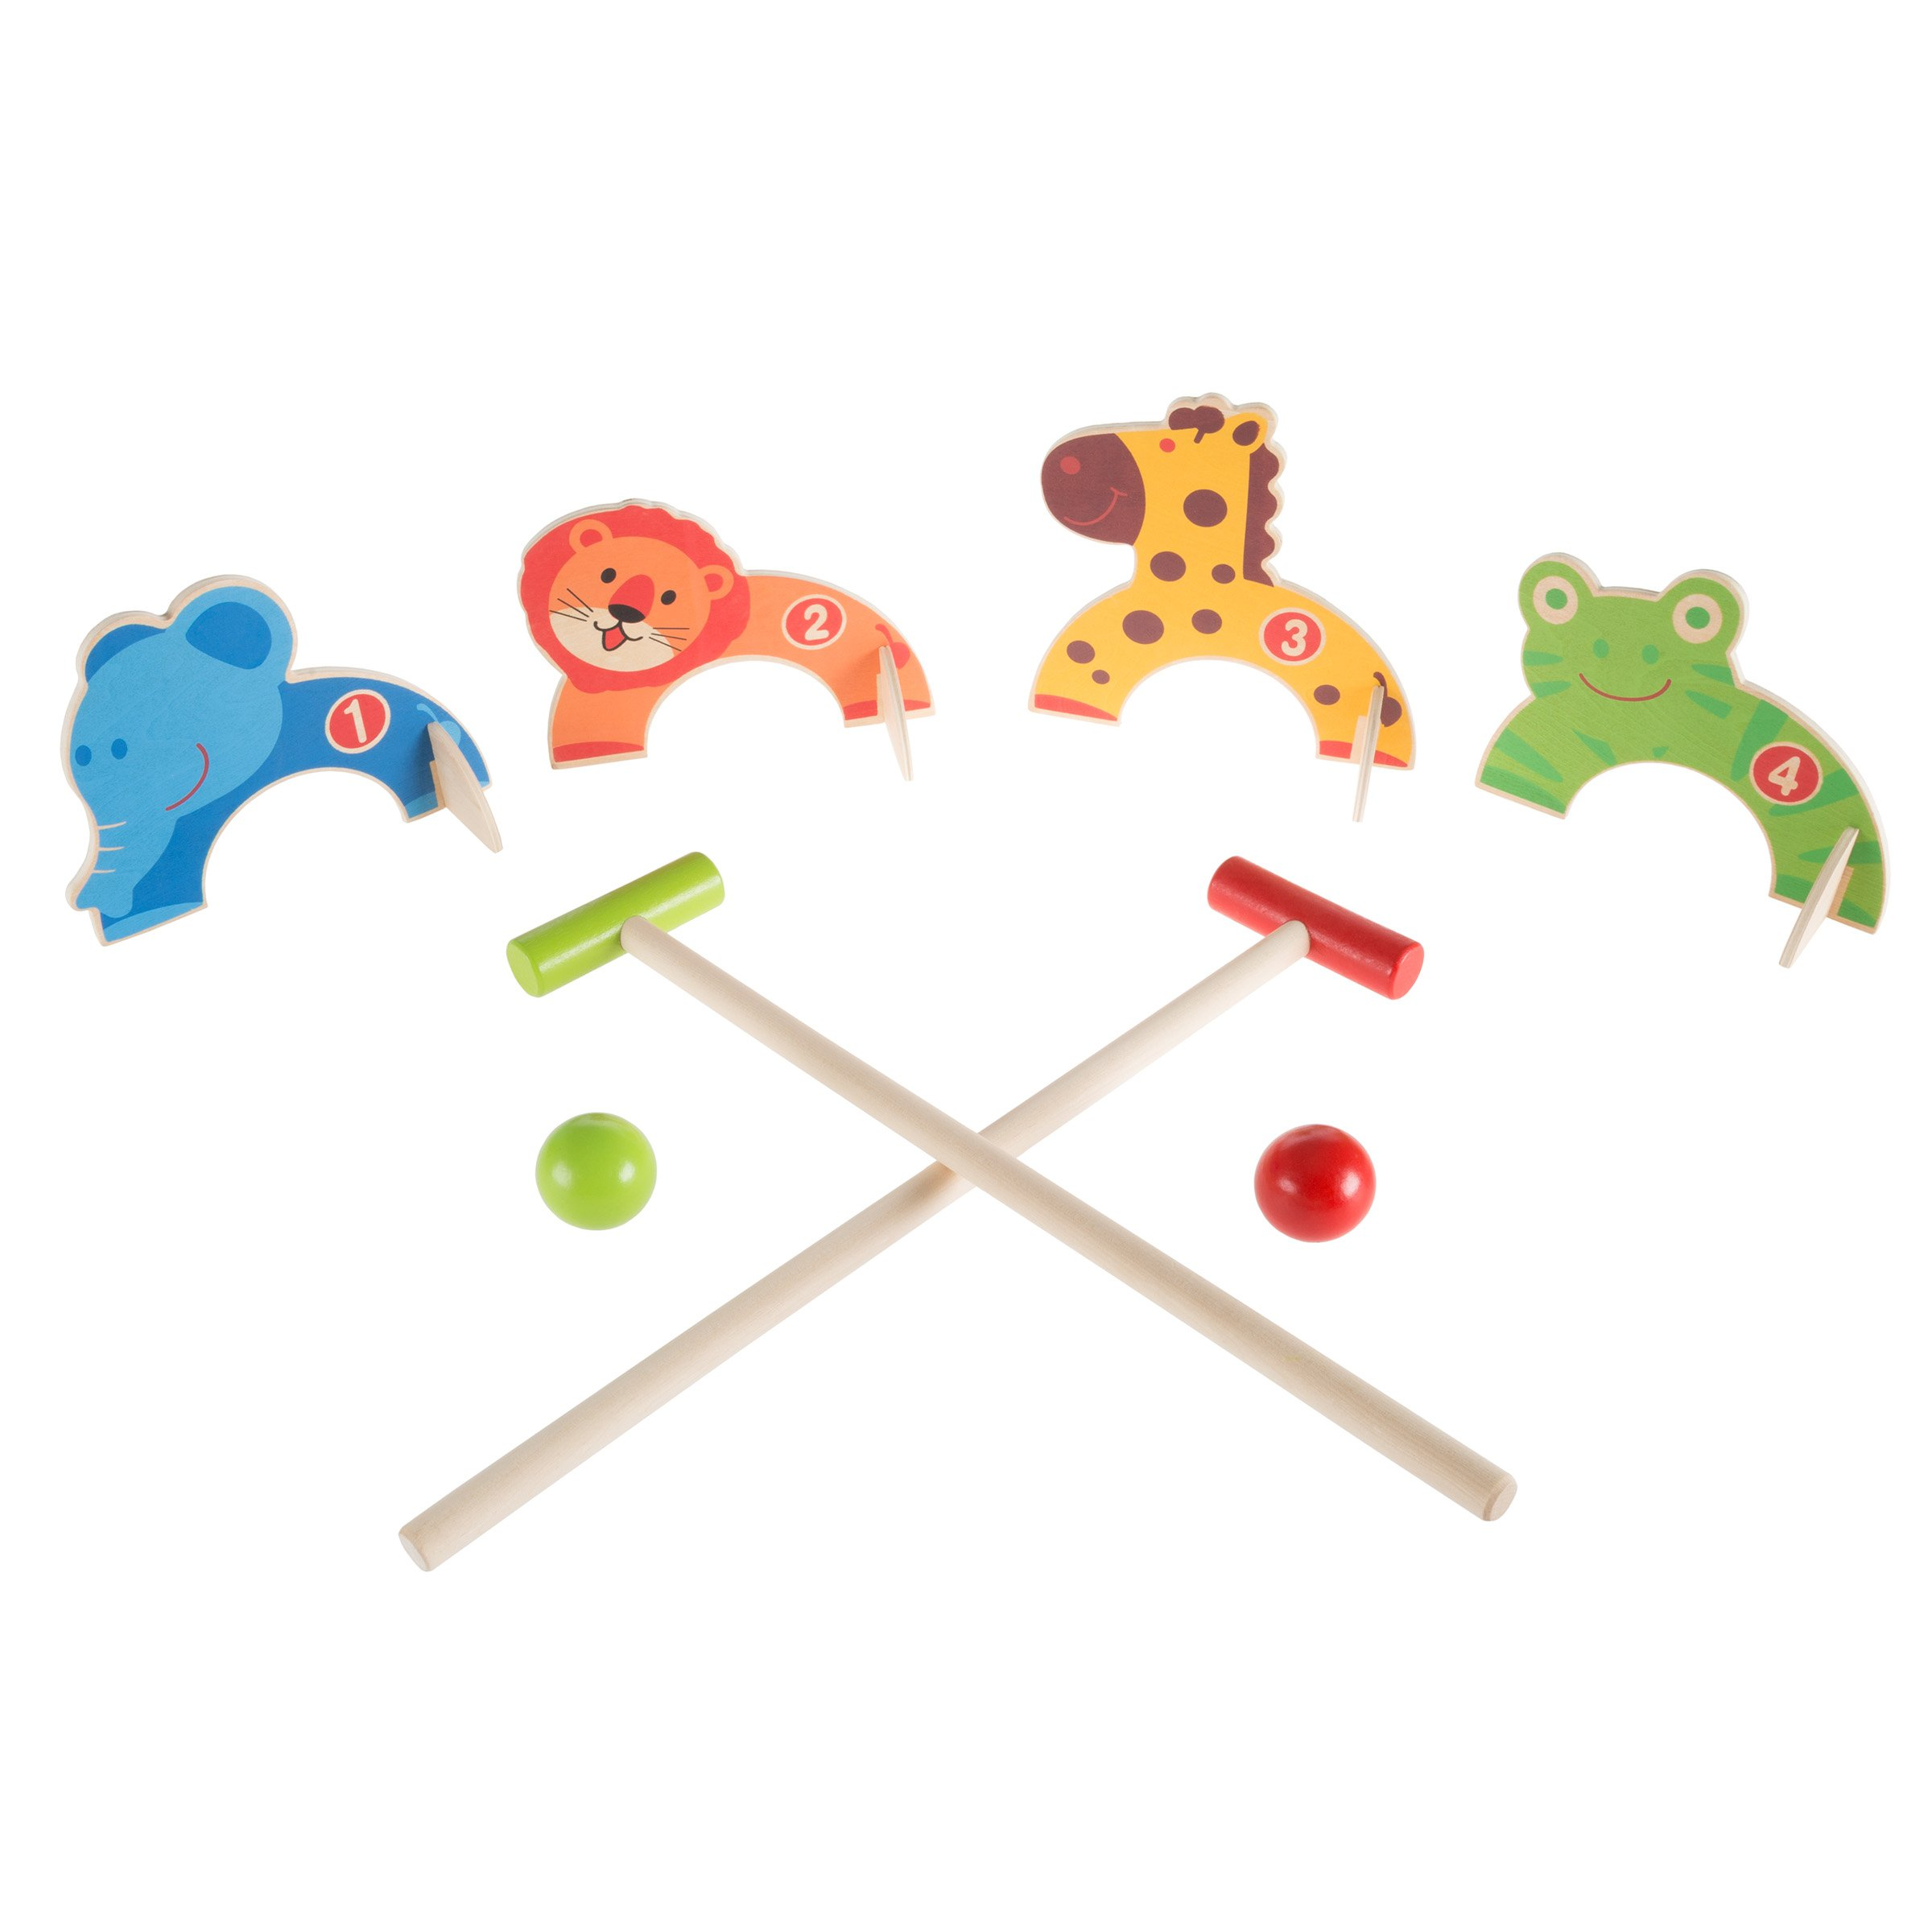 Hey!Play! Kids Animal Croquet Set- Mini Croquet Playset with 4 Wooden Zoo Animal Design Wickets and 2 Mallets-Fun Classic Game for Boys and Girls by Hey!Play!